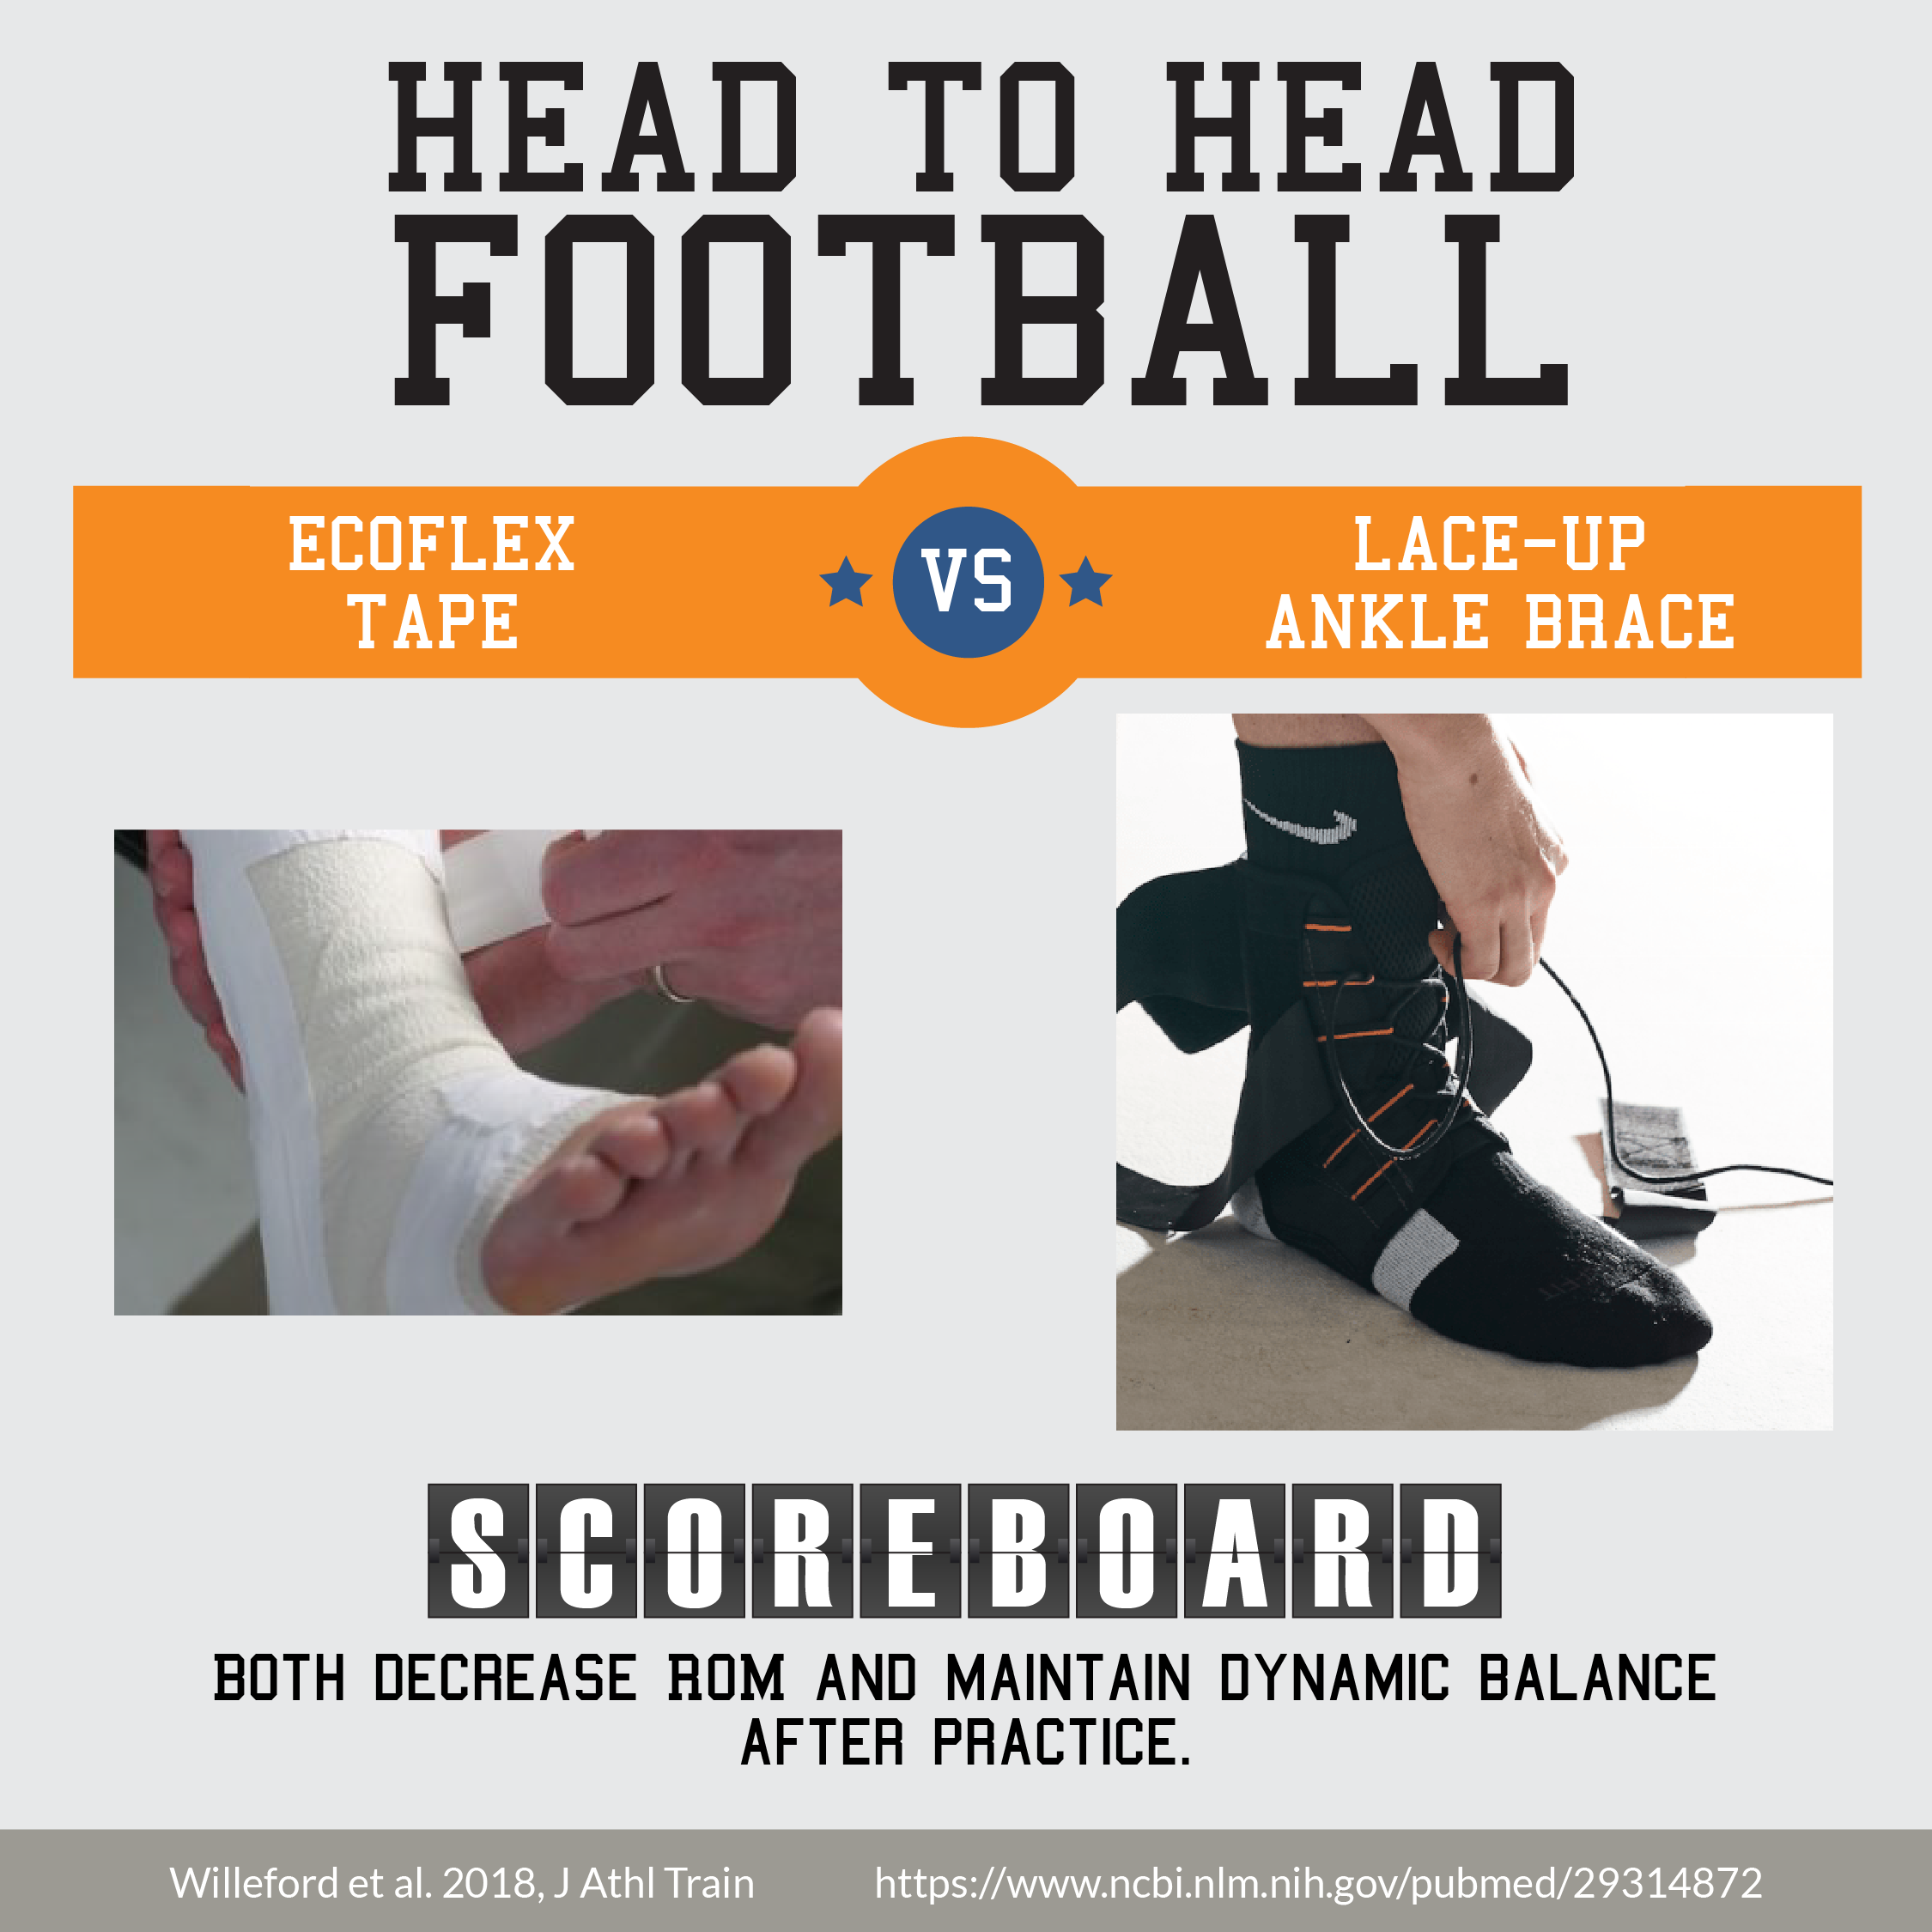 Collegiate Football Players' Ankle Range of Motion and Dynamic Balance in Braced and Self-Adherent-Taped Conditions